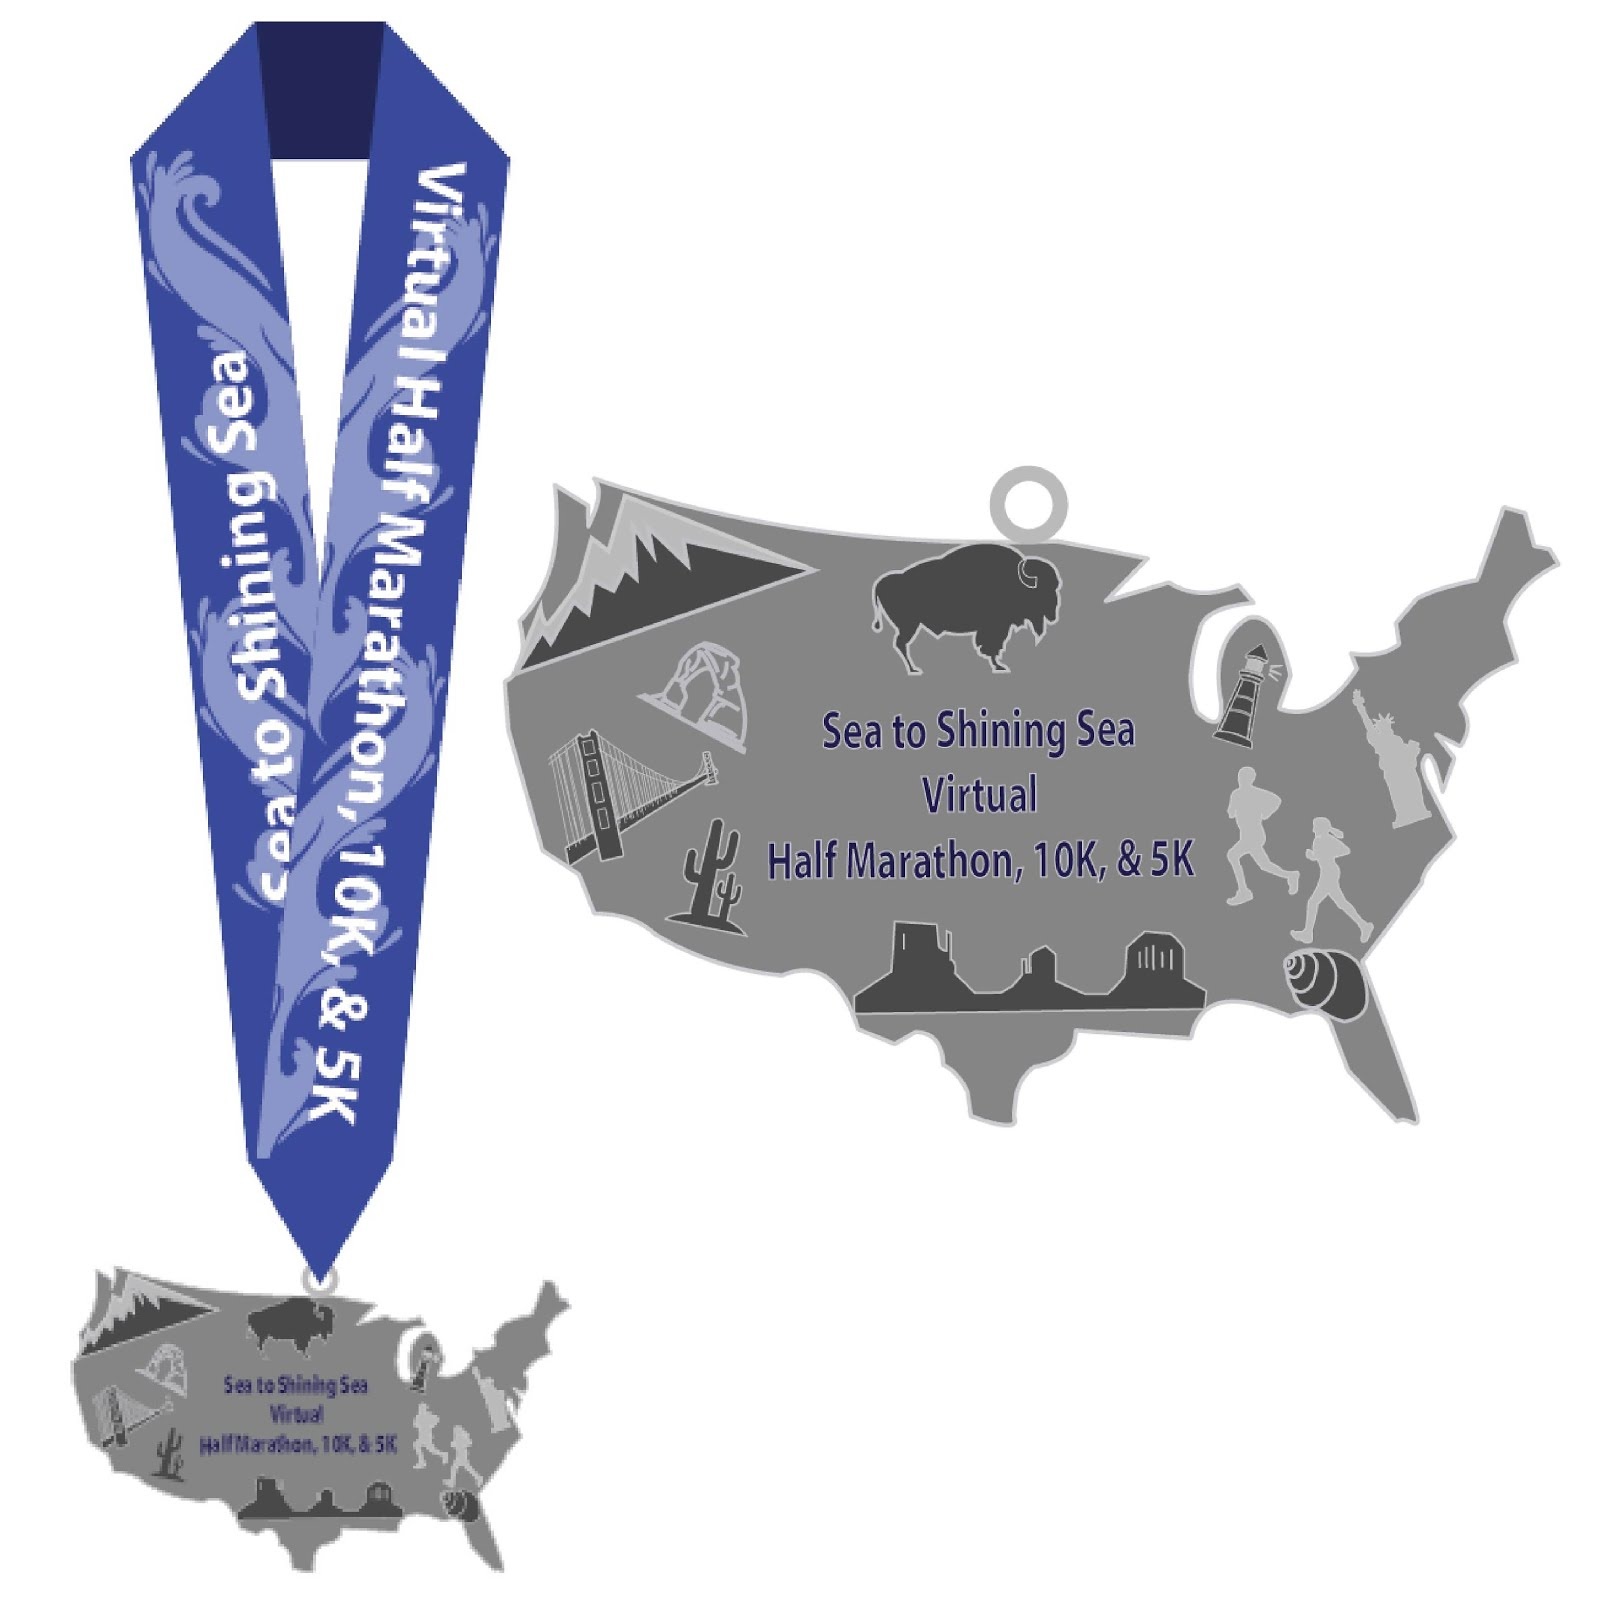 Our Race Medal